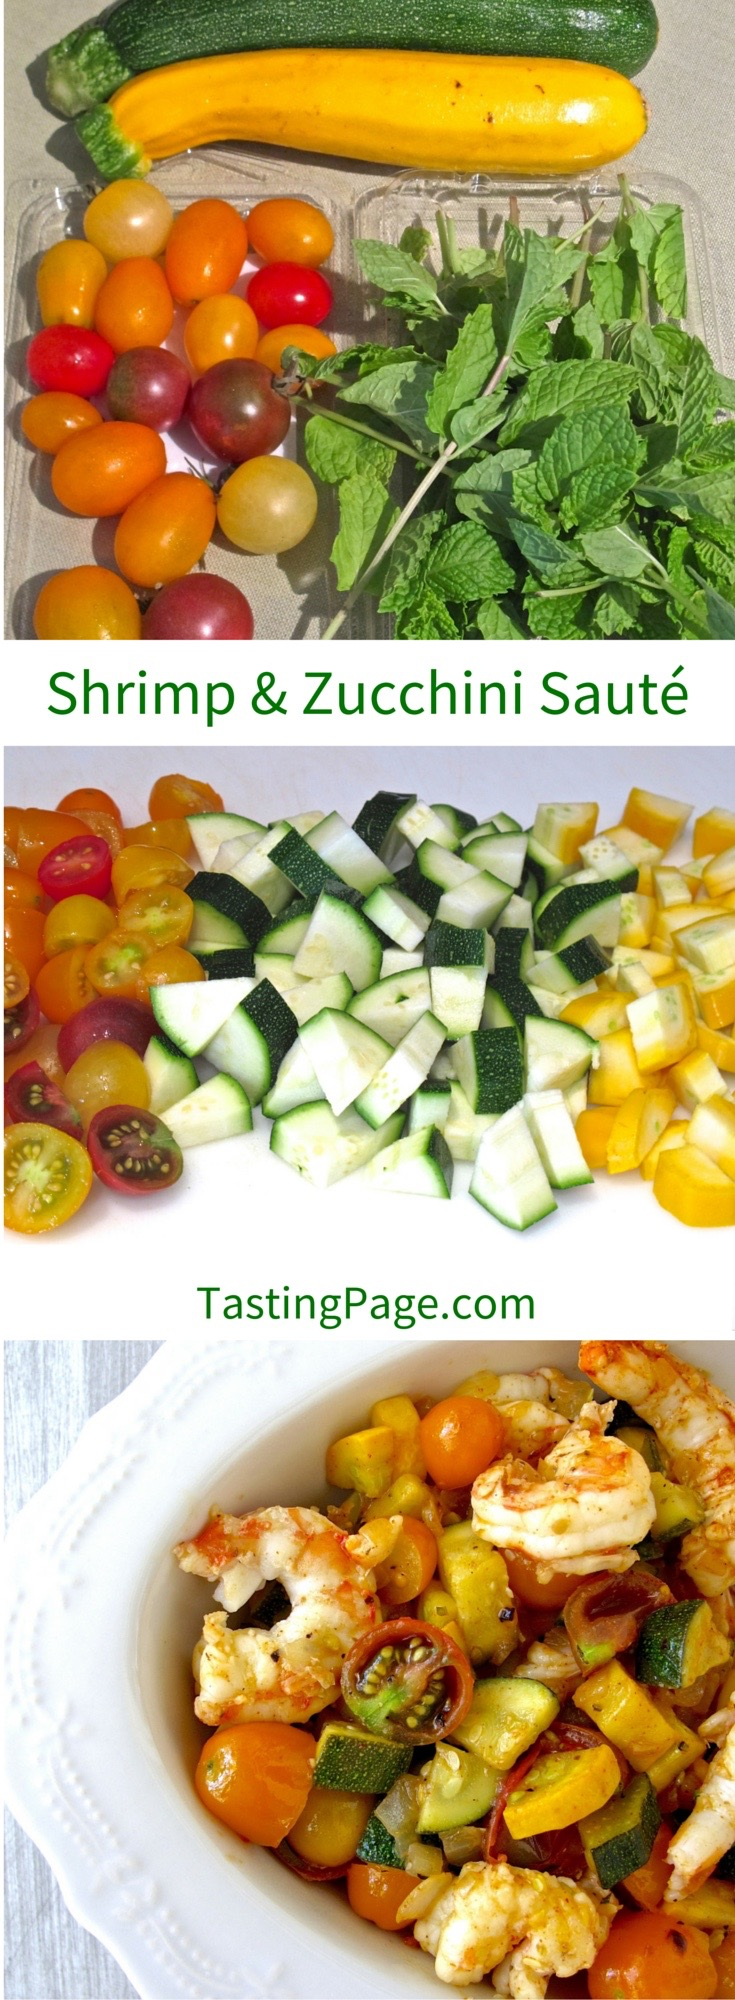 Shrimp and Zucchini Sauté | TastingPage.com